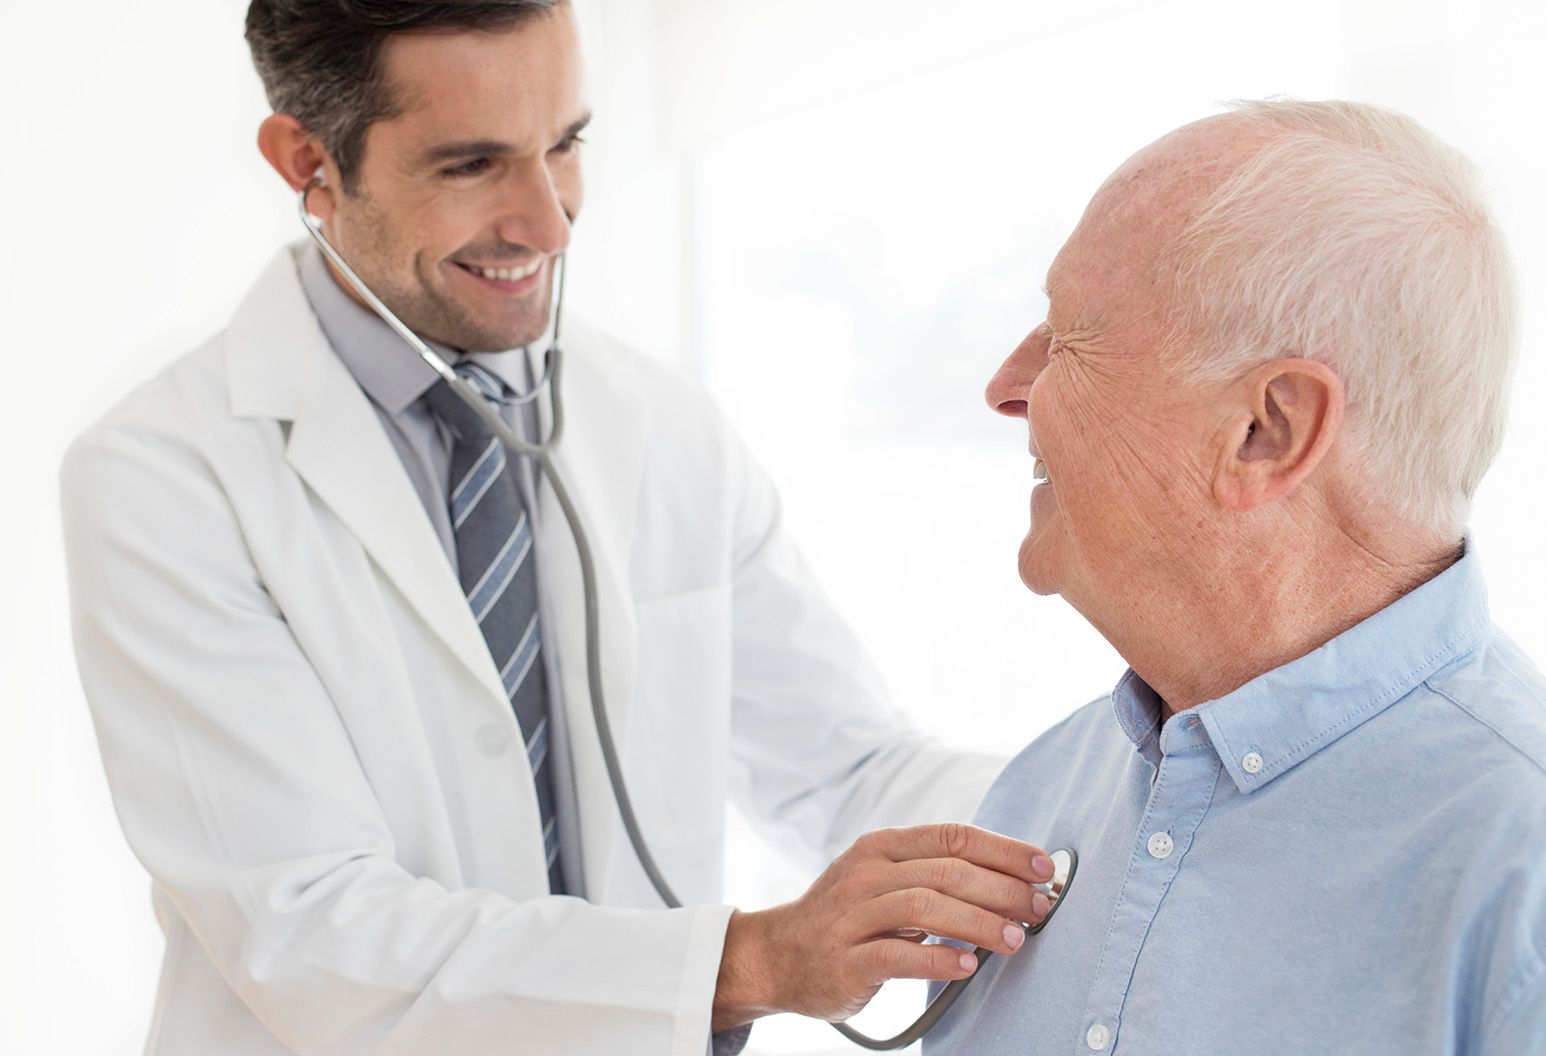 Older man with gray hair and blue shirt smiles as male doctor with brown hair listens to his heart with stethoscope.